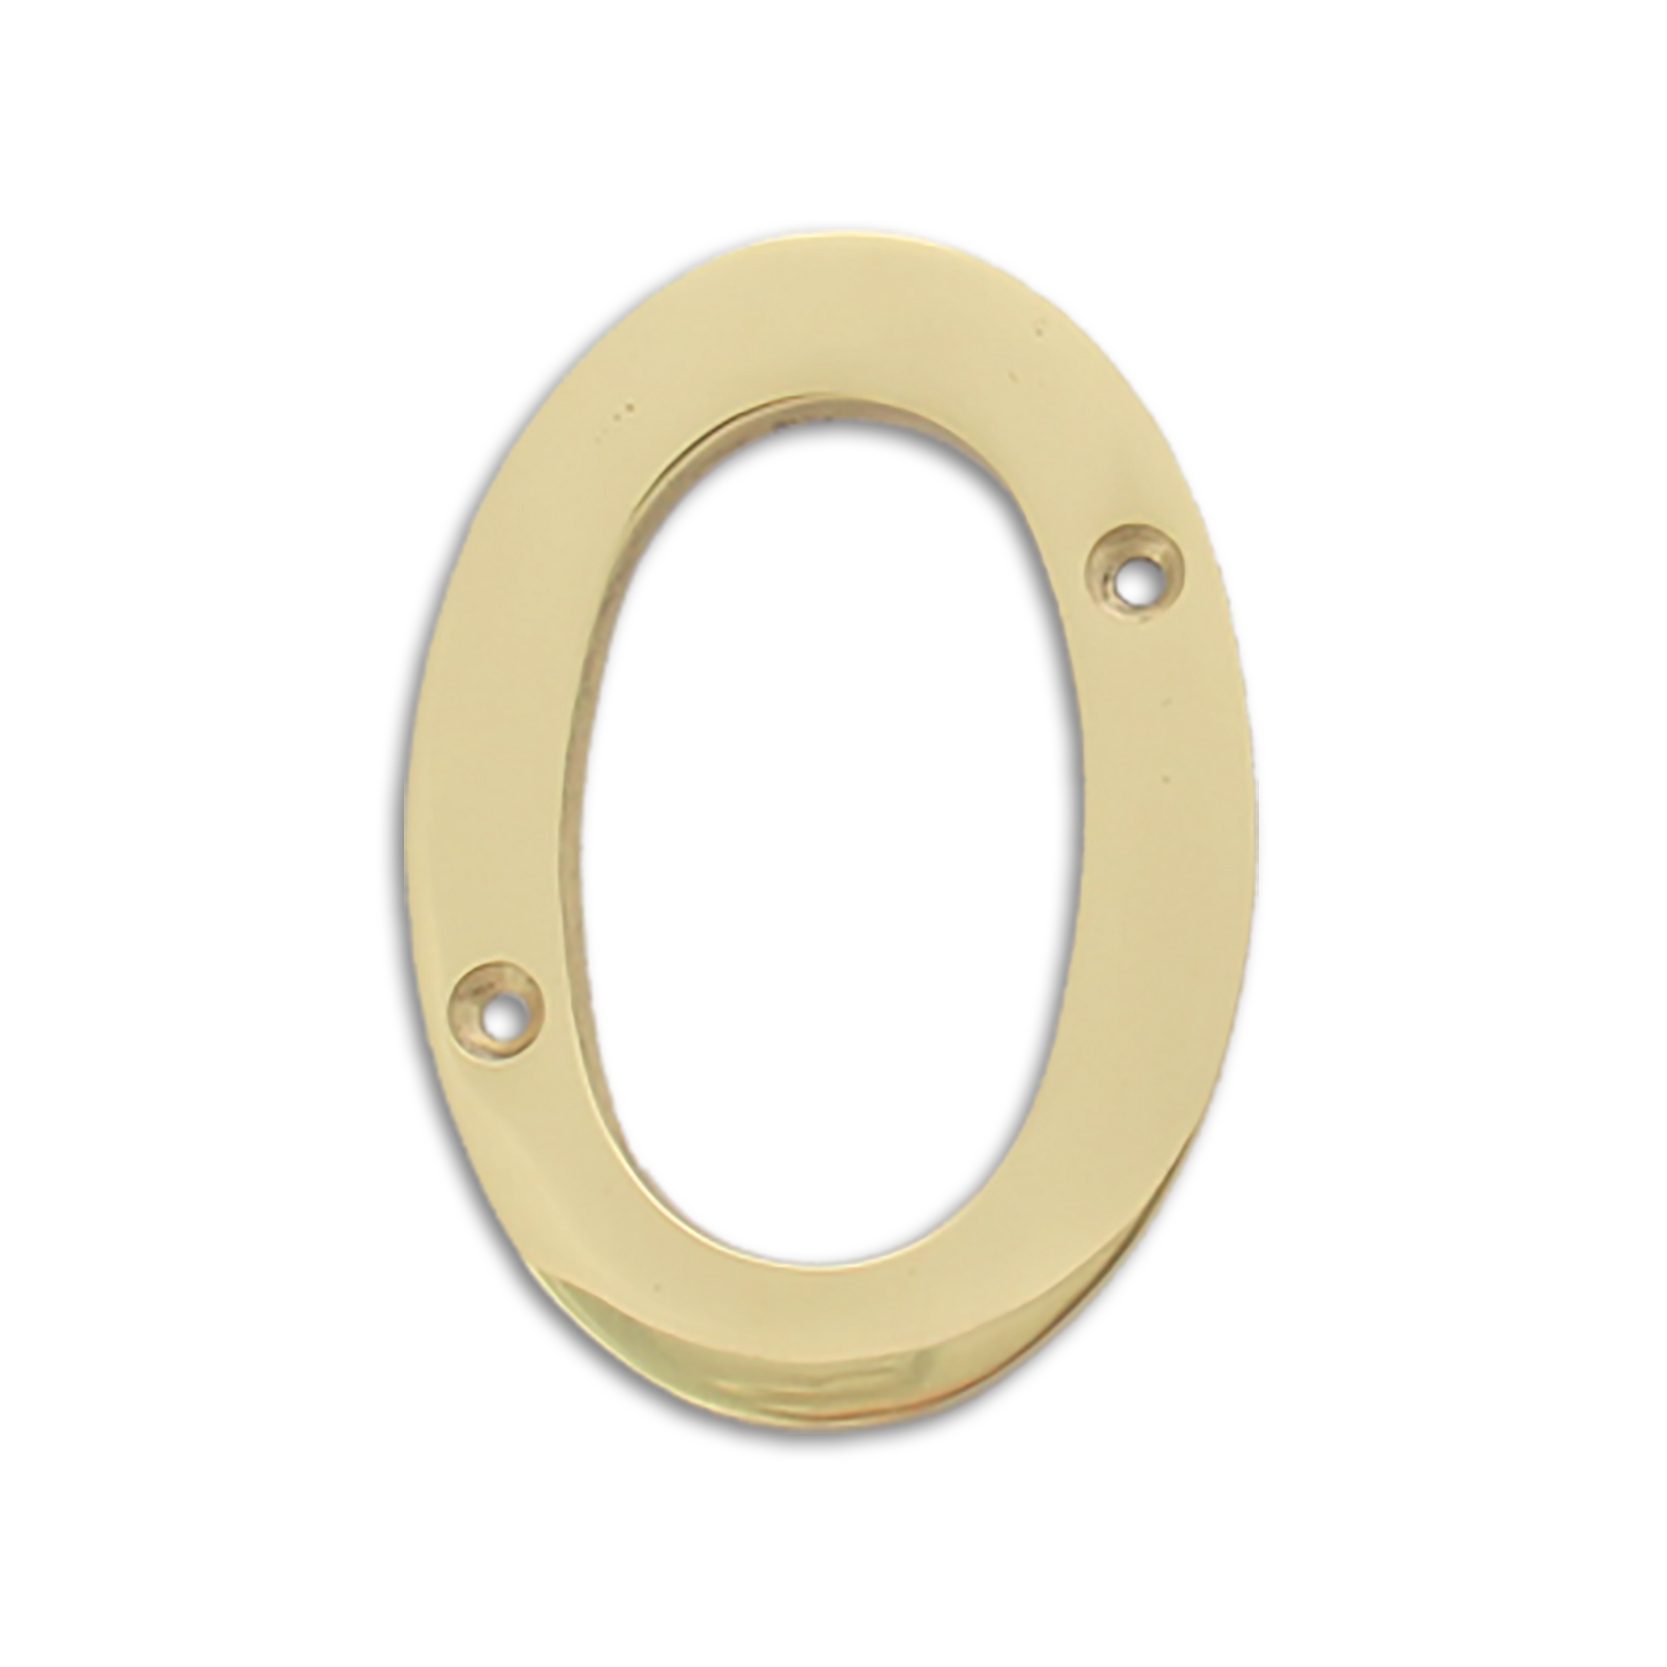 4-inch brass metal house number in polished brass finish - metal number 0